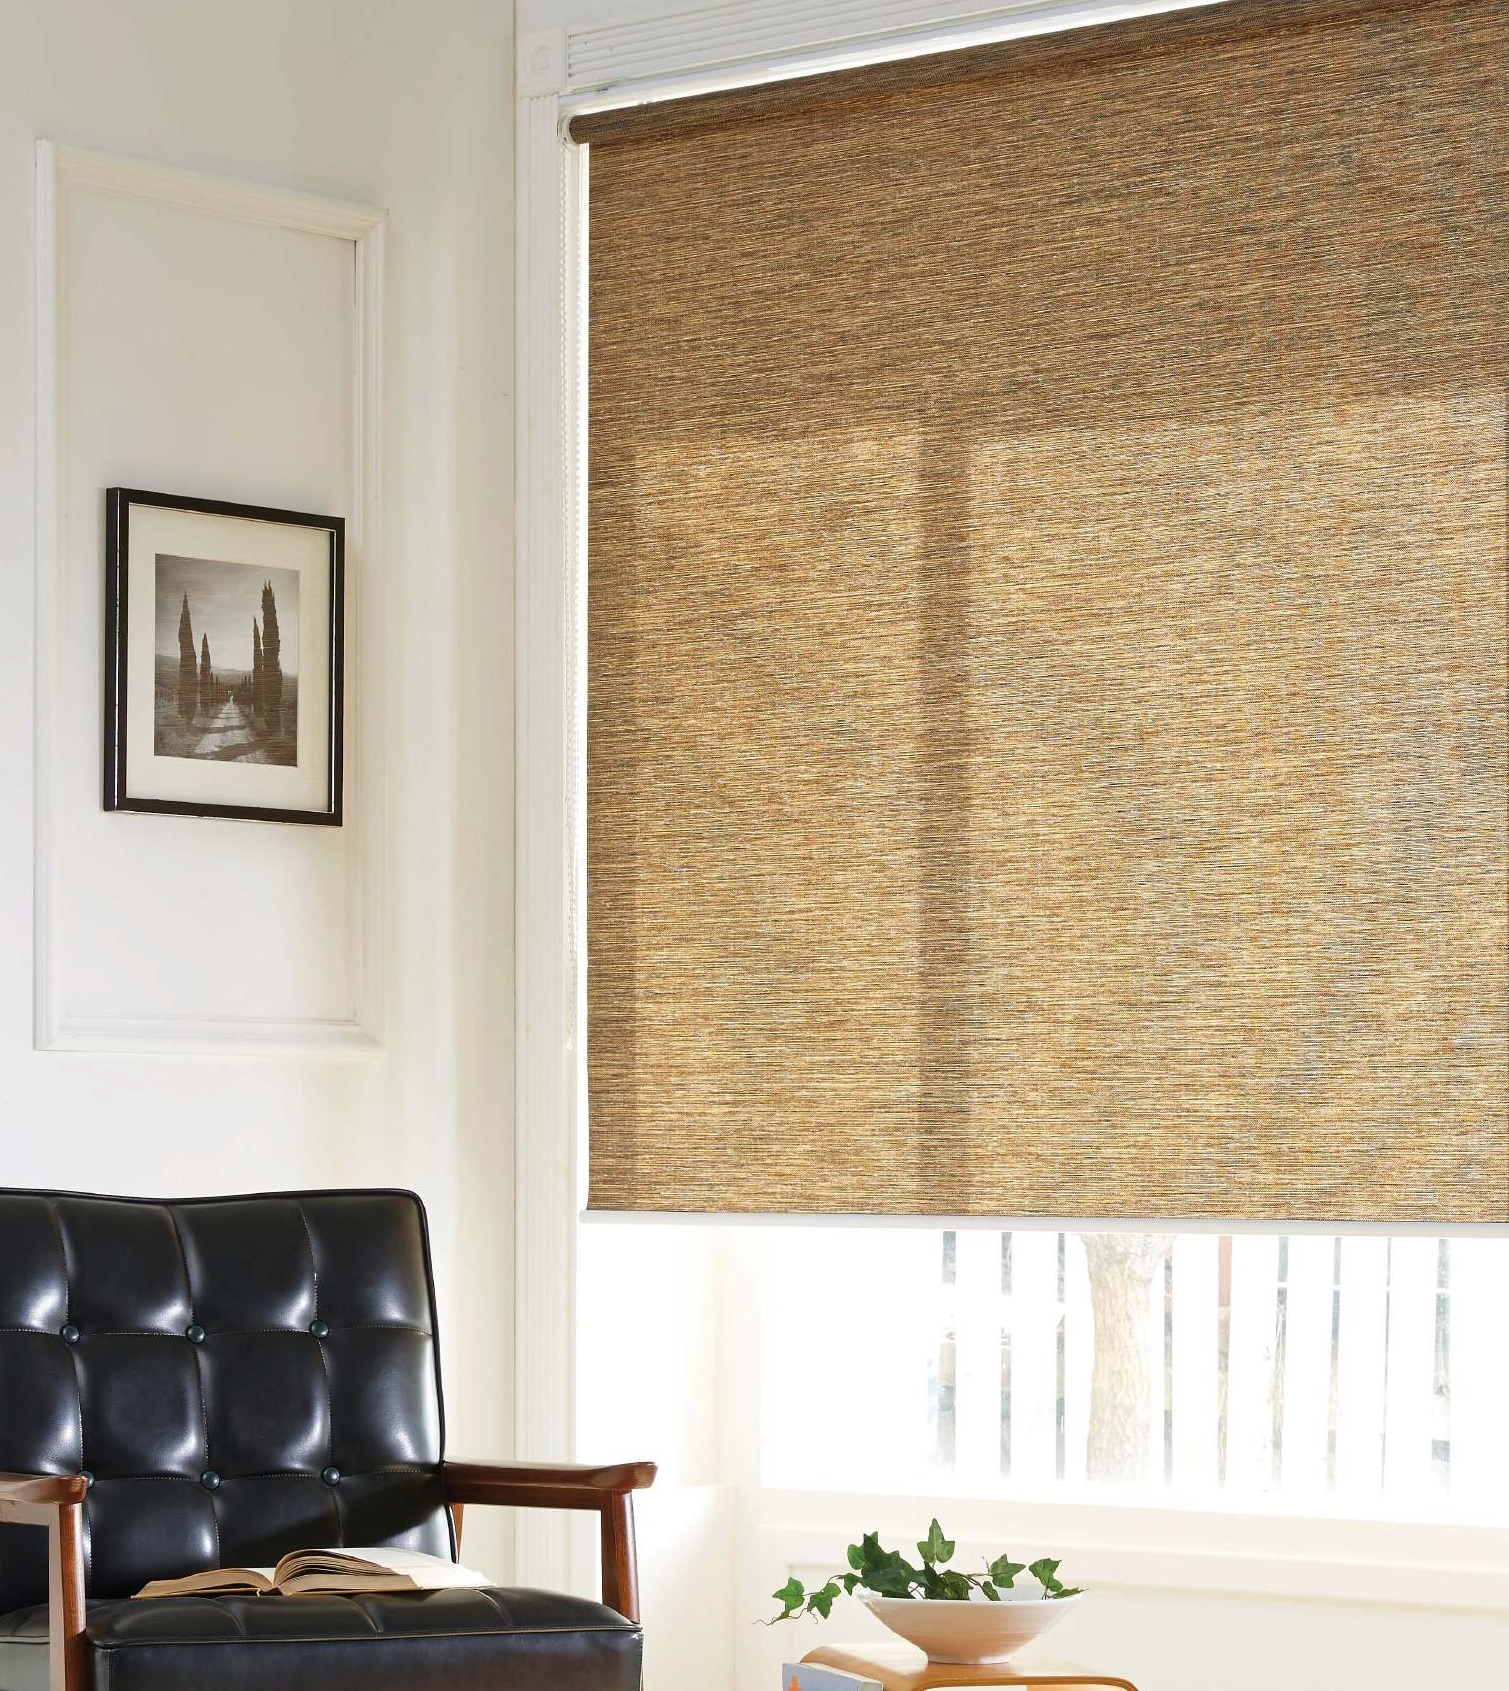 Fabrics for roll blinds and combi blinds DONGJIN COLTD